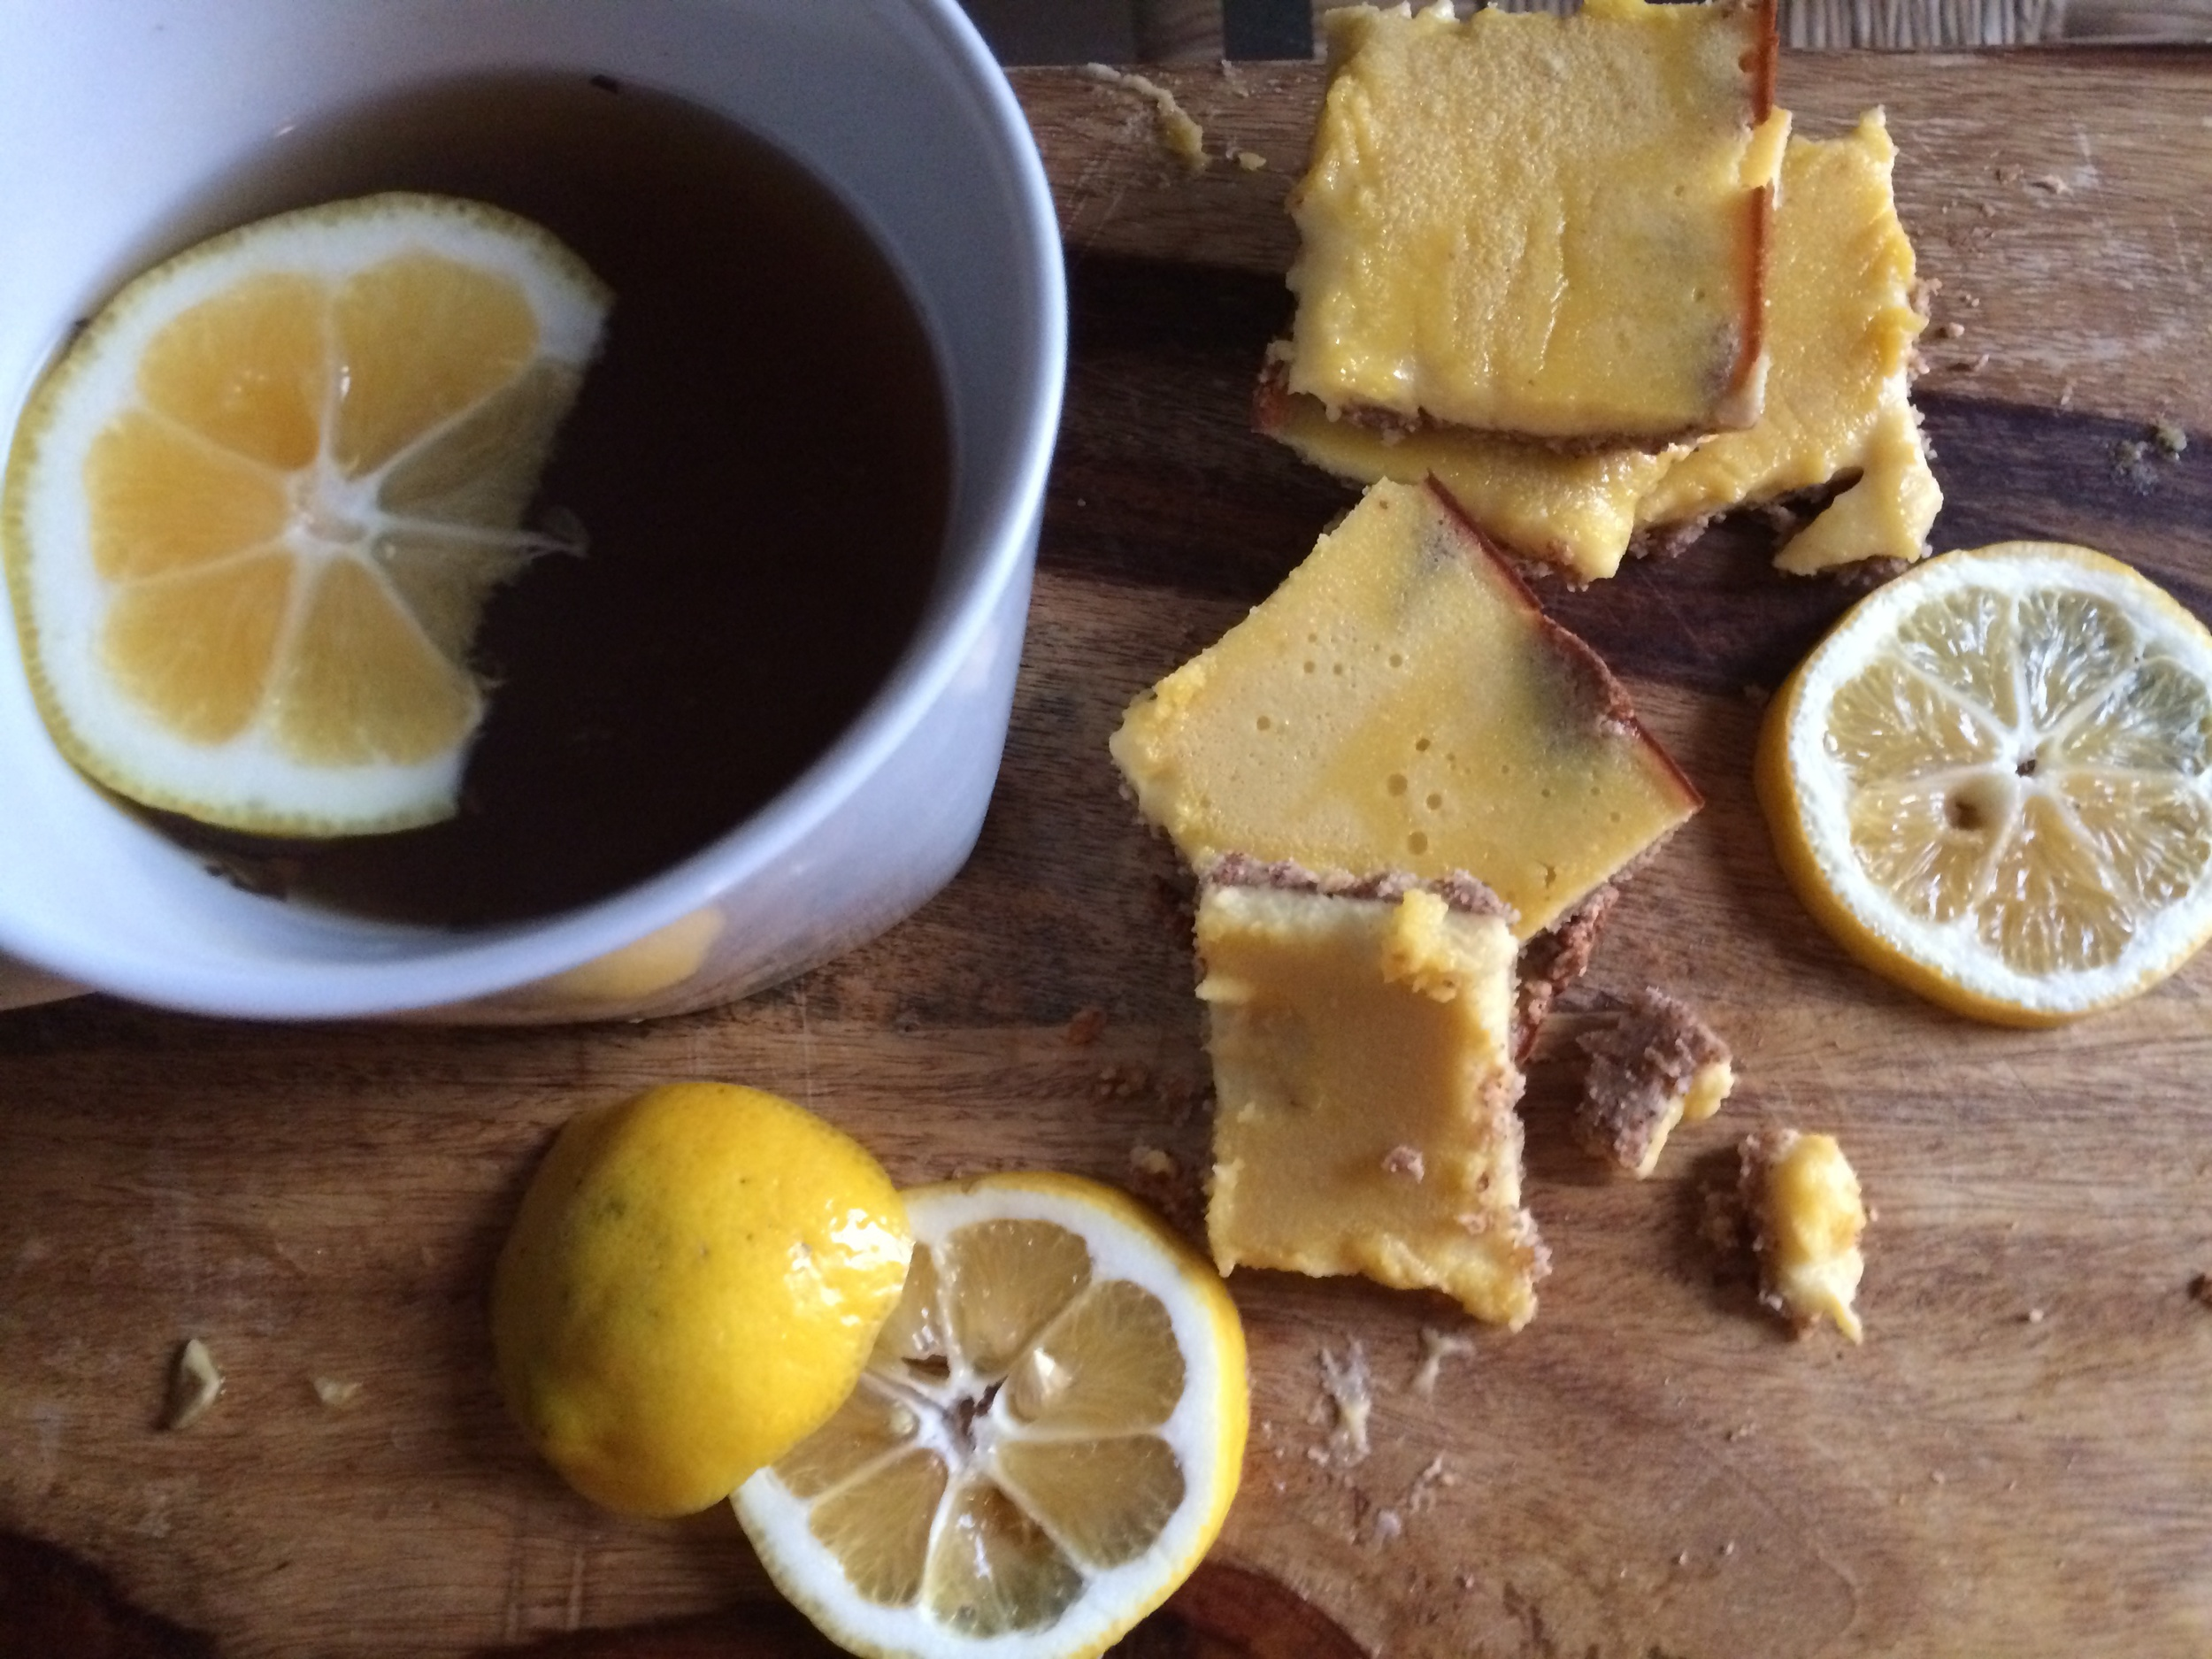 Paleo Lemon Bars , shot with my iPhone 5s